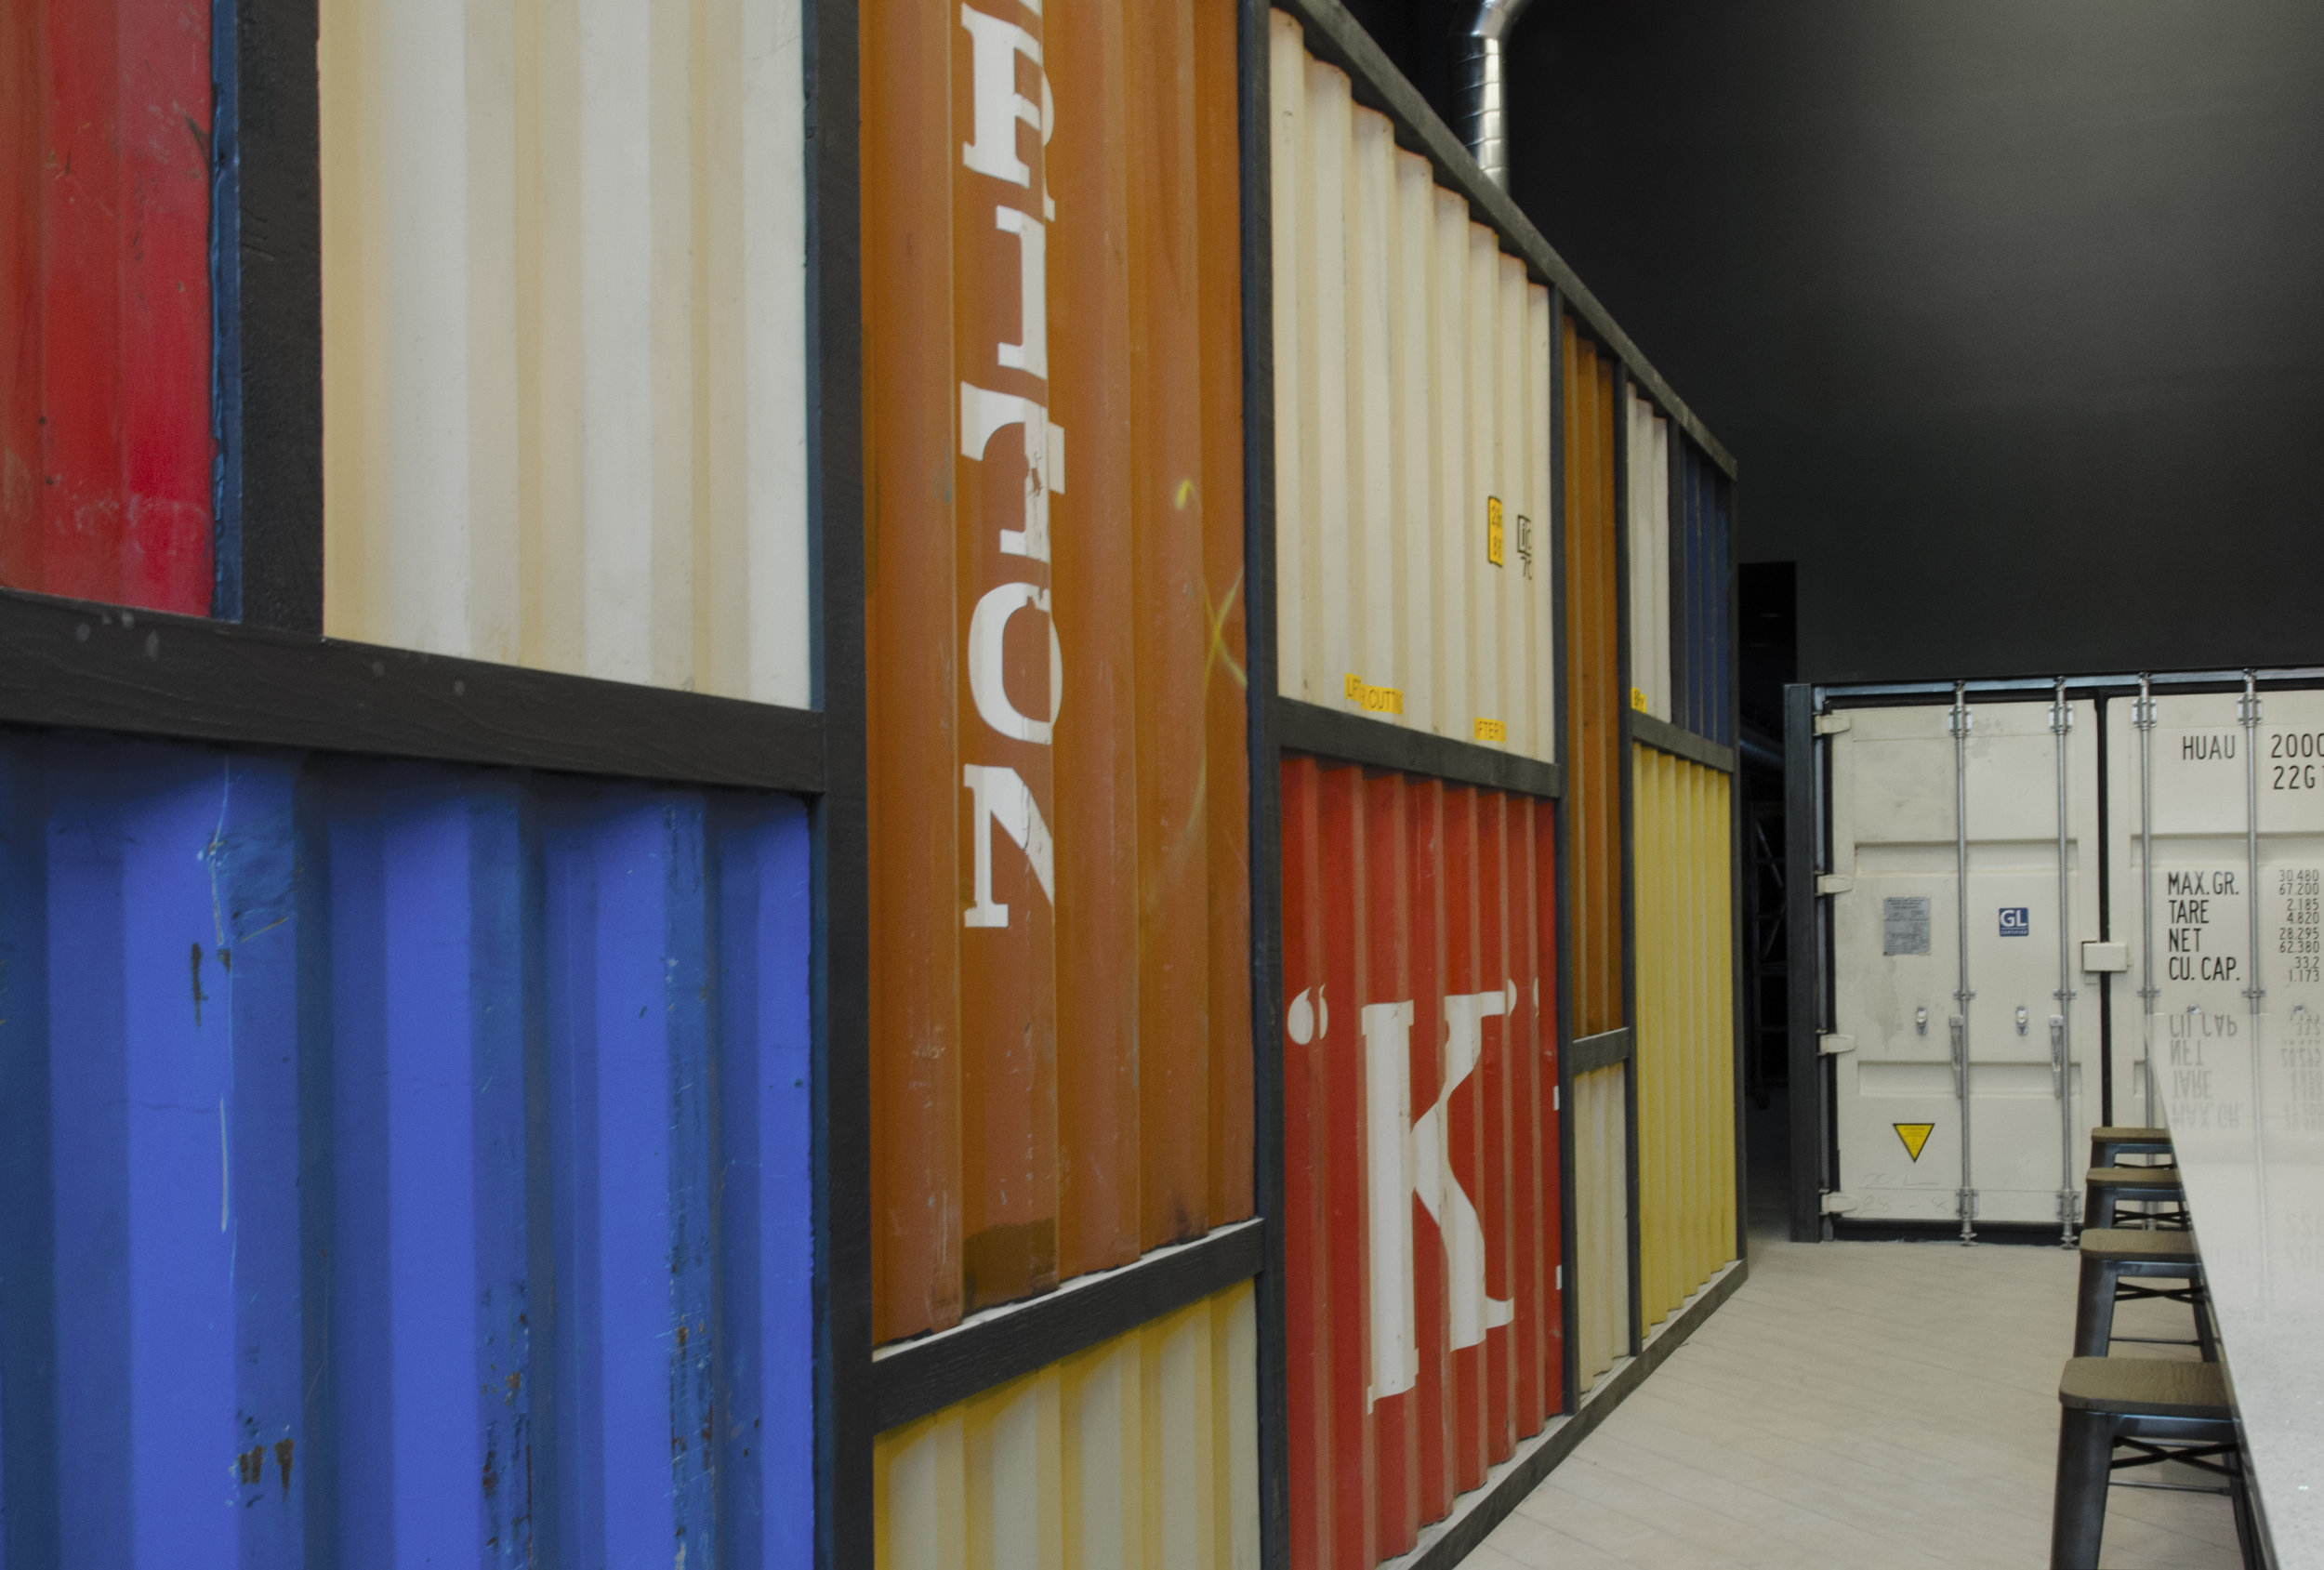 the port bar wall of recycled shipping containers from the port of oakland  (Jeff Kaluzny/JMKImages @jmkImages)